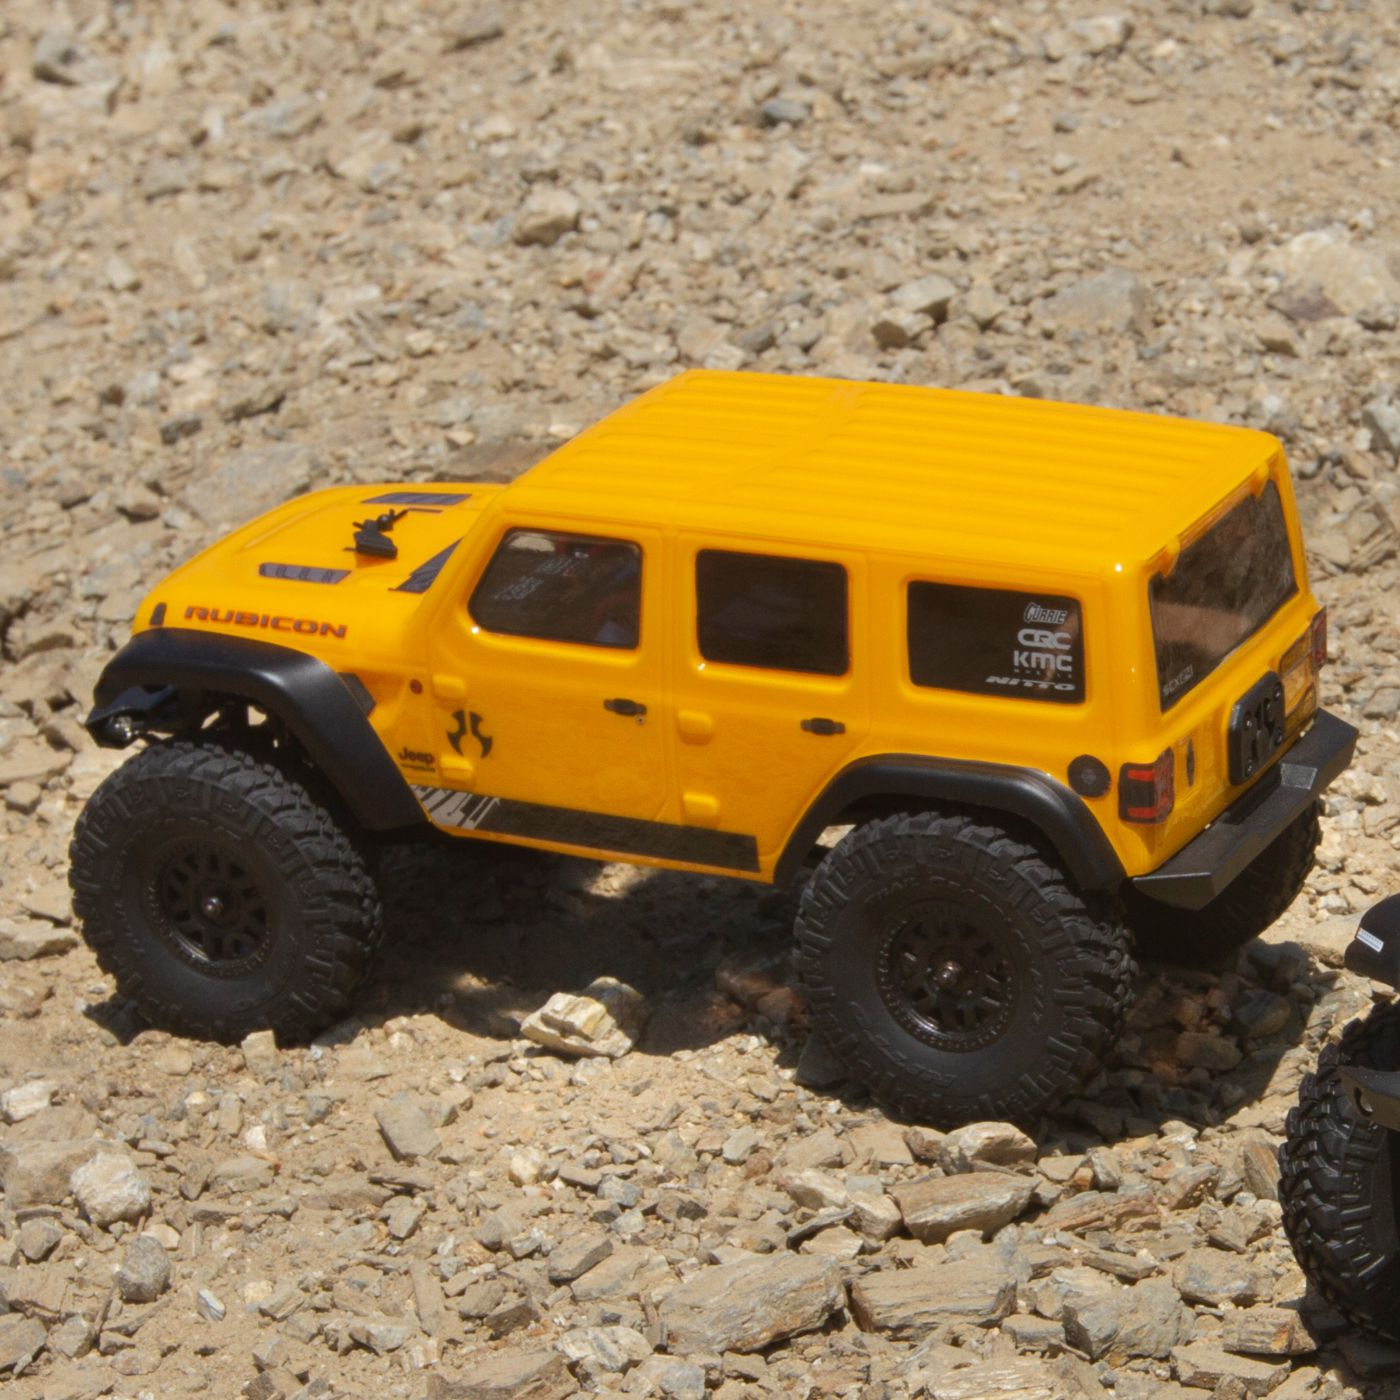 Axial Scx24 Jeep Wrangler 4x4 rtr scaler 1/24 01